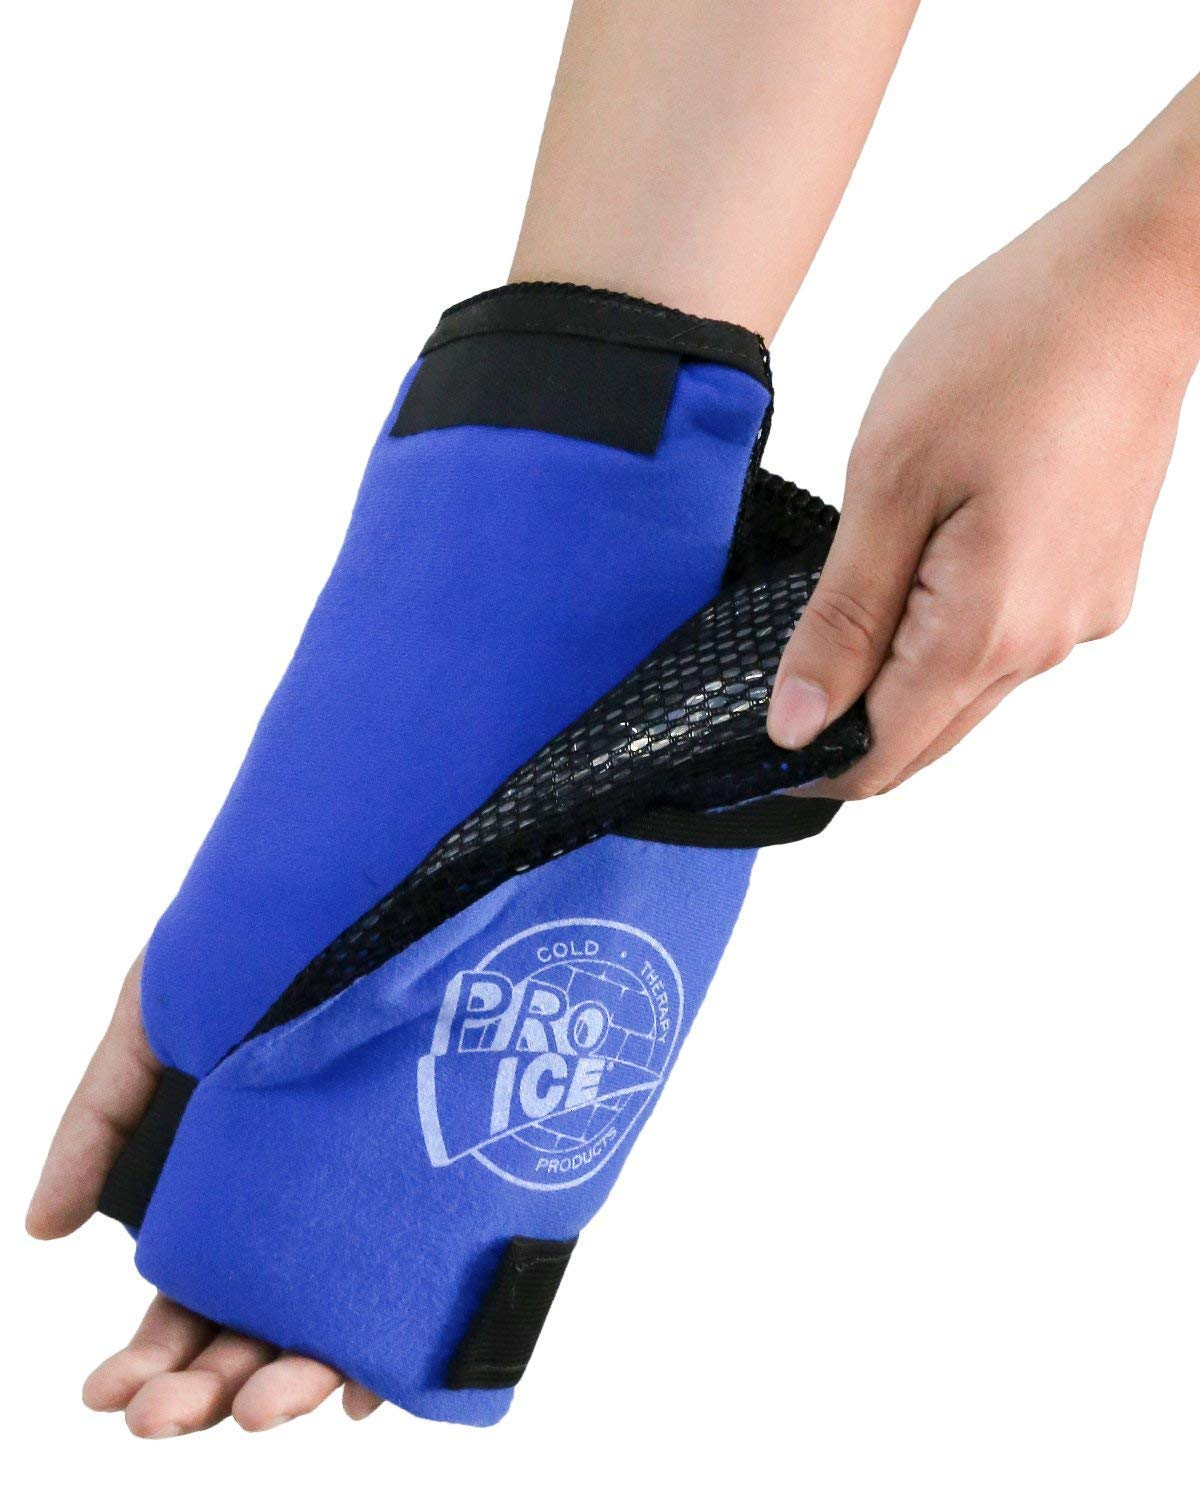 Pro Ice Wrist Ice Pack Wrap with Compression for Carpal Tunnel Pain, Arthritis, Tendonitis, Hand Injuries PI300 by PRO ICE COLD THERAPY PRODUCTS